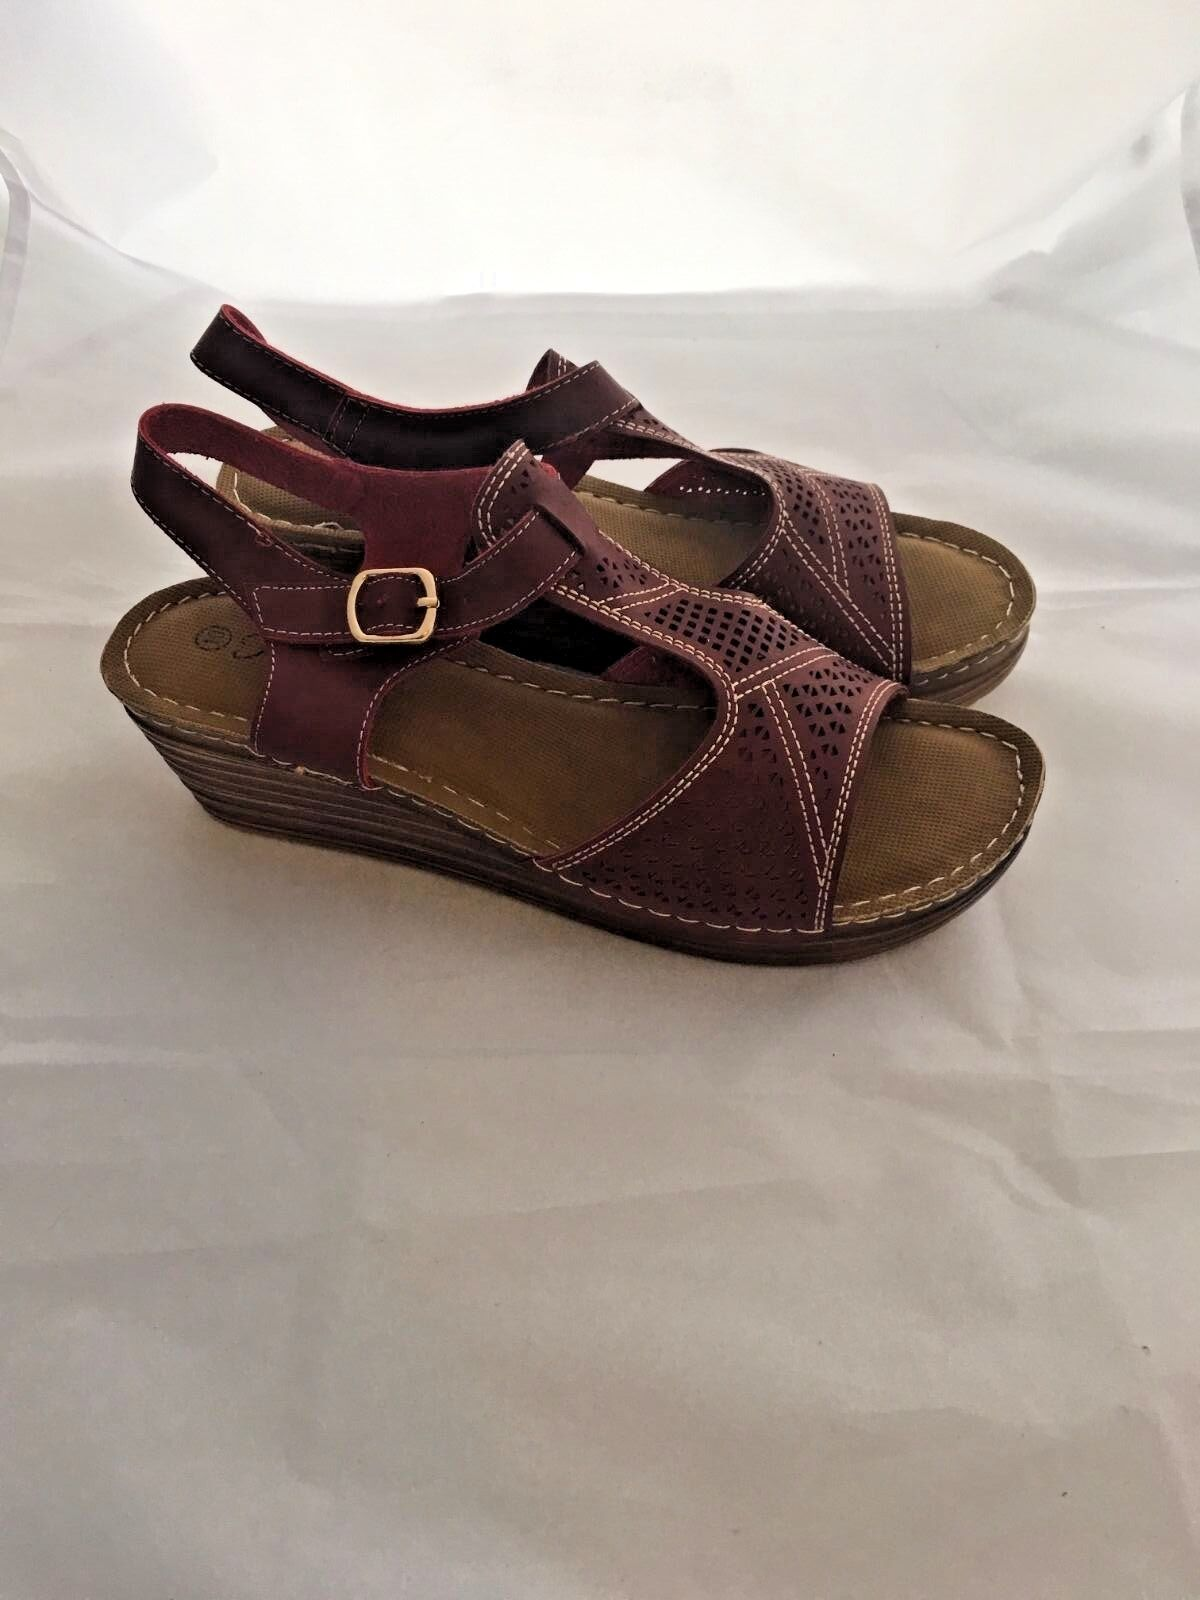 Man/Woman Forever women's sandal wine size 10 material High-quality The highest quality material 10 Easy life 1138e8